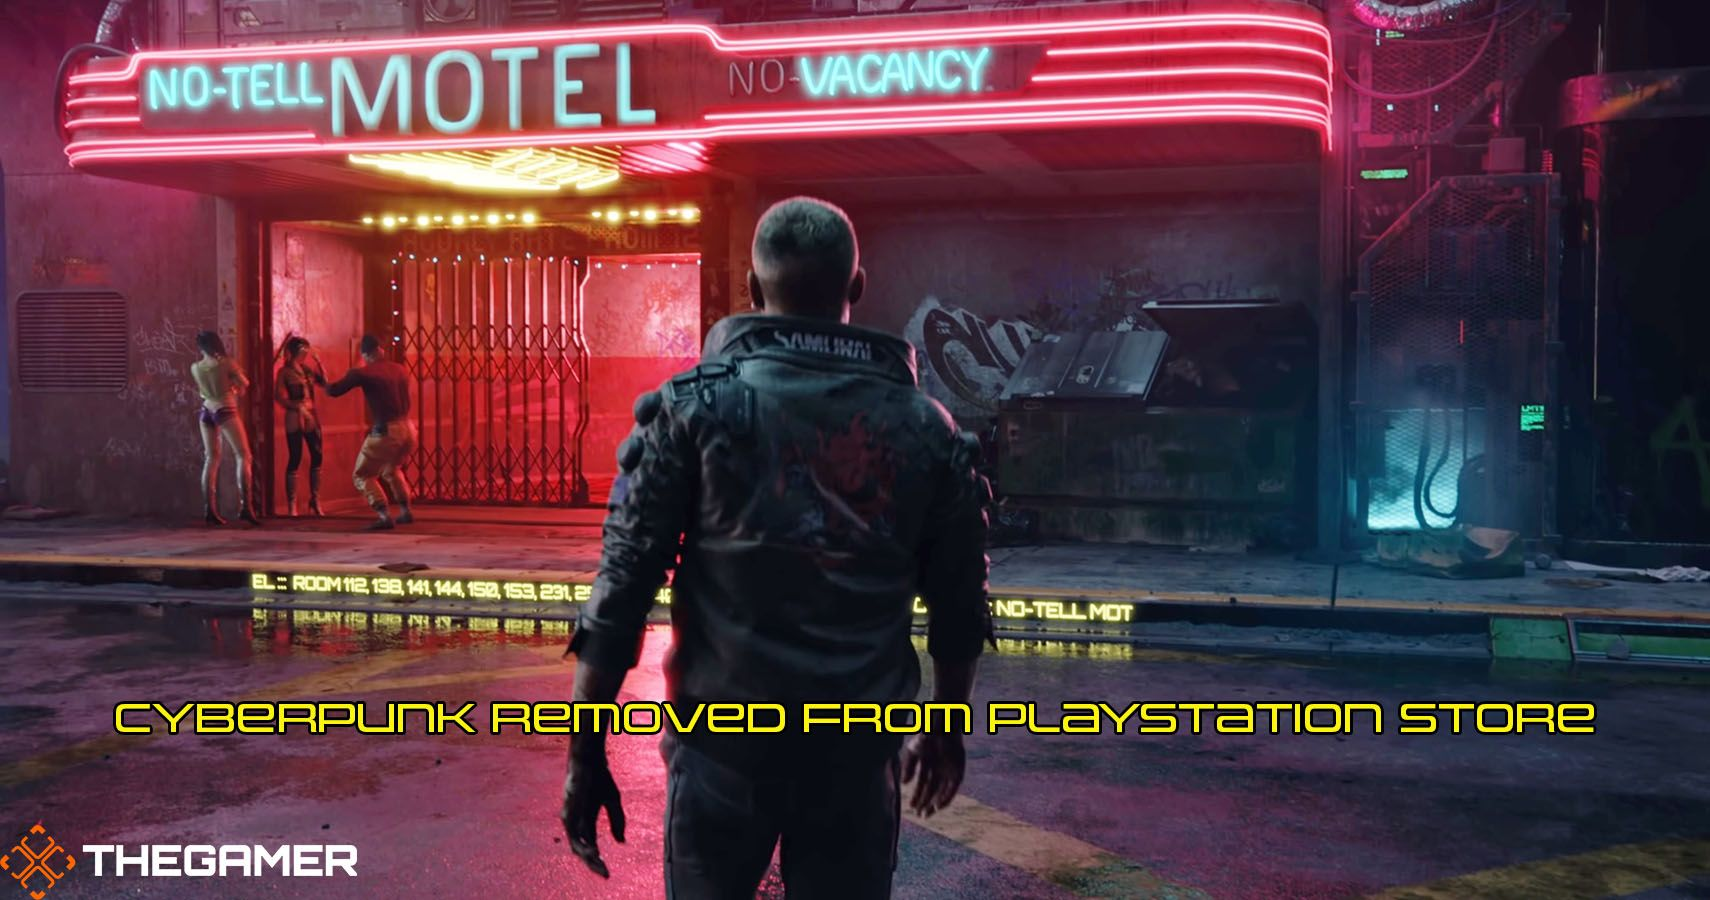 PREVIOUSLY: Sony Removes Cyberpunk 2077 From PlayStation Store, Promises Full Refunds